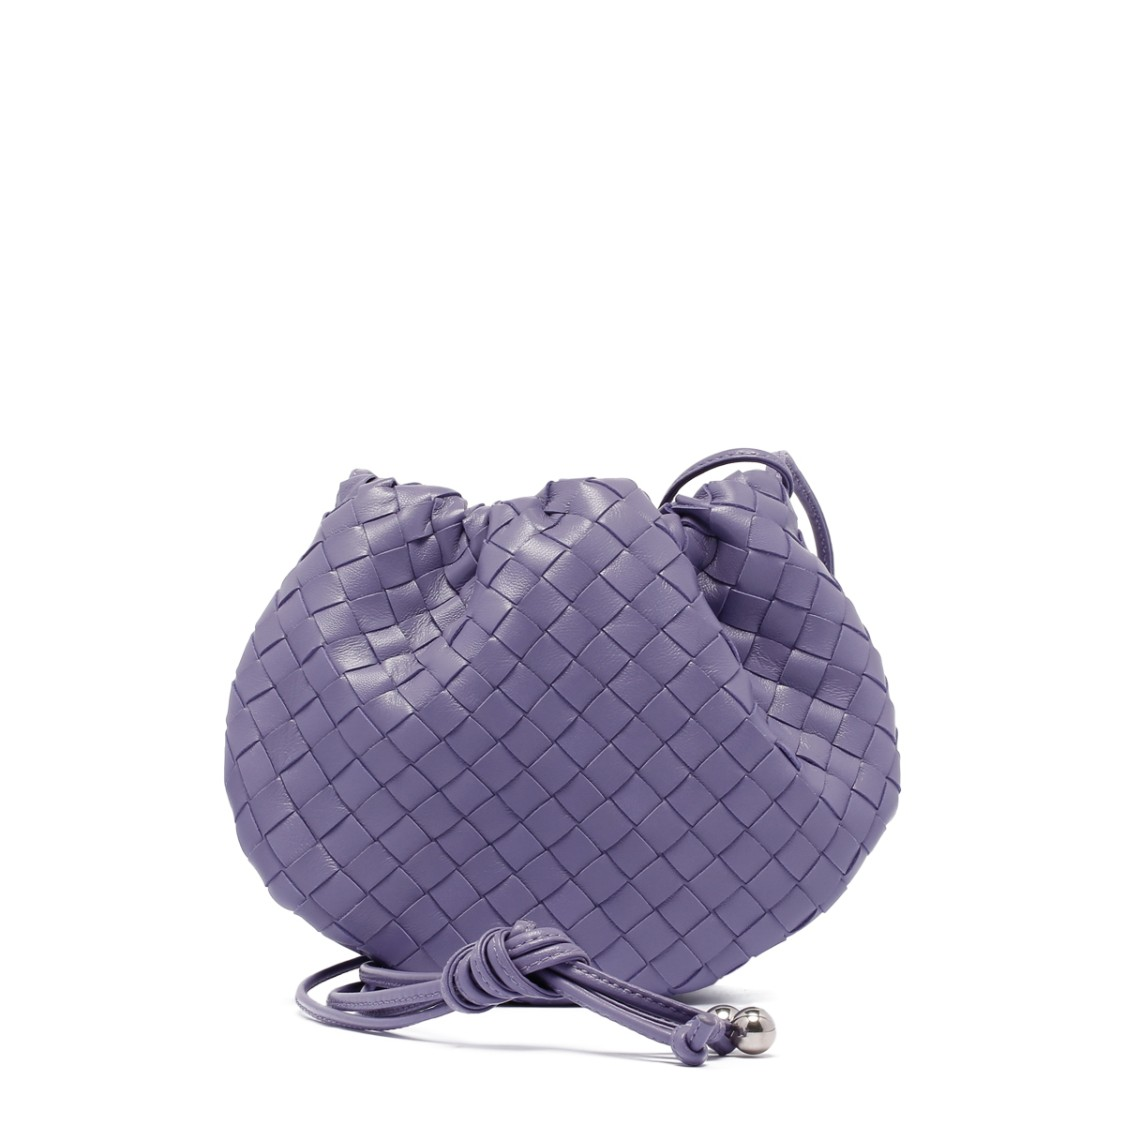 Bottega Veneta Lavender Intrecciato Nappa Leather The Mini Bulb Bag In Purple